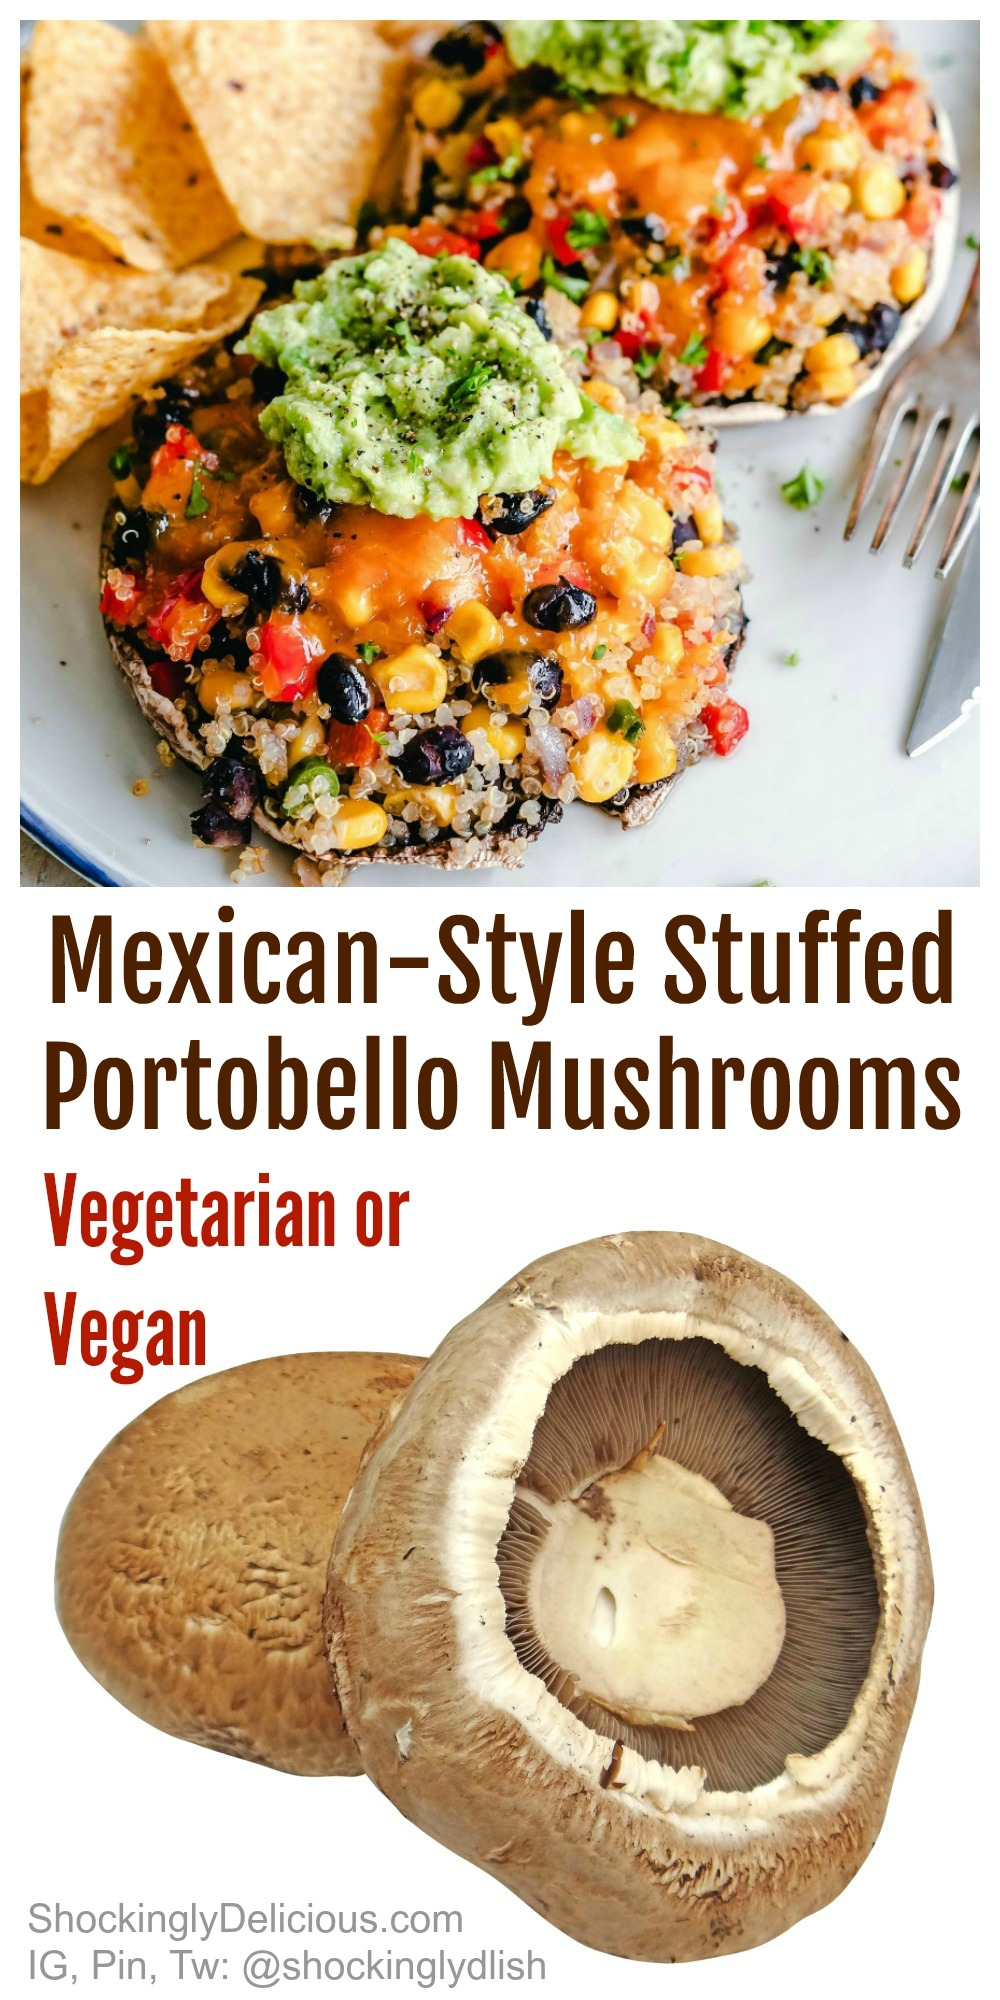 Mexican Style Stuffed Portobello Mushrooms With Quinoa Black Beans And Mashed Avocado Vegetarian Or Vegan Shockingly Delicious